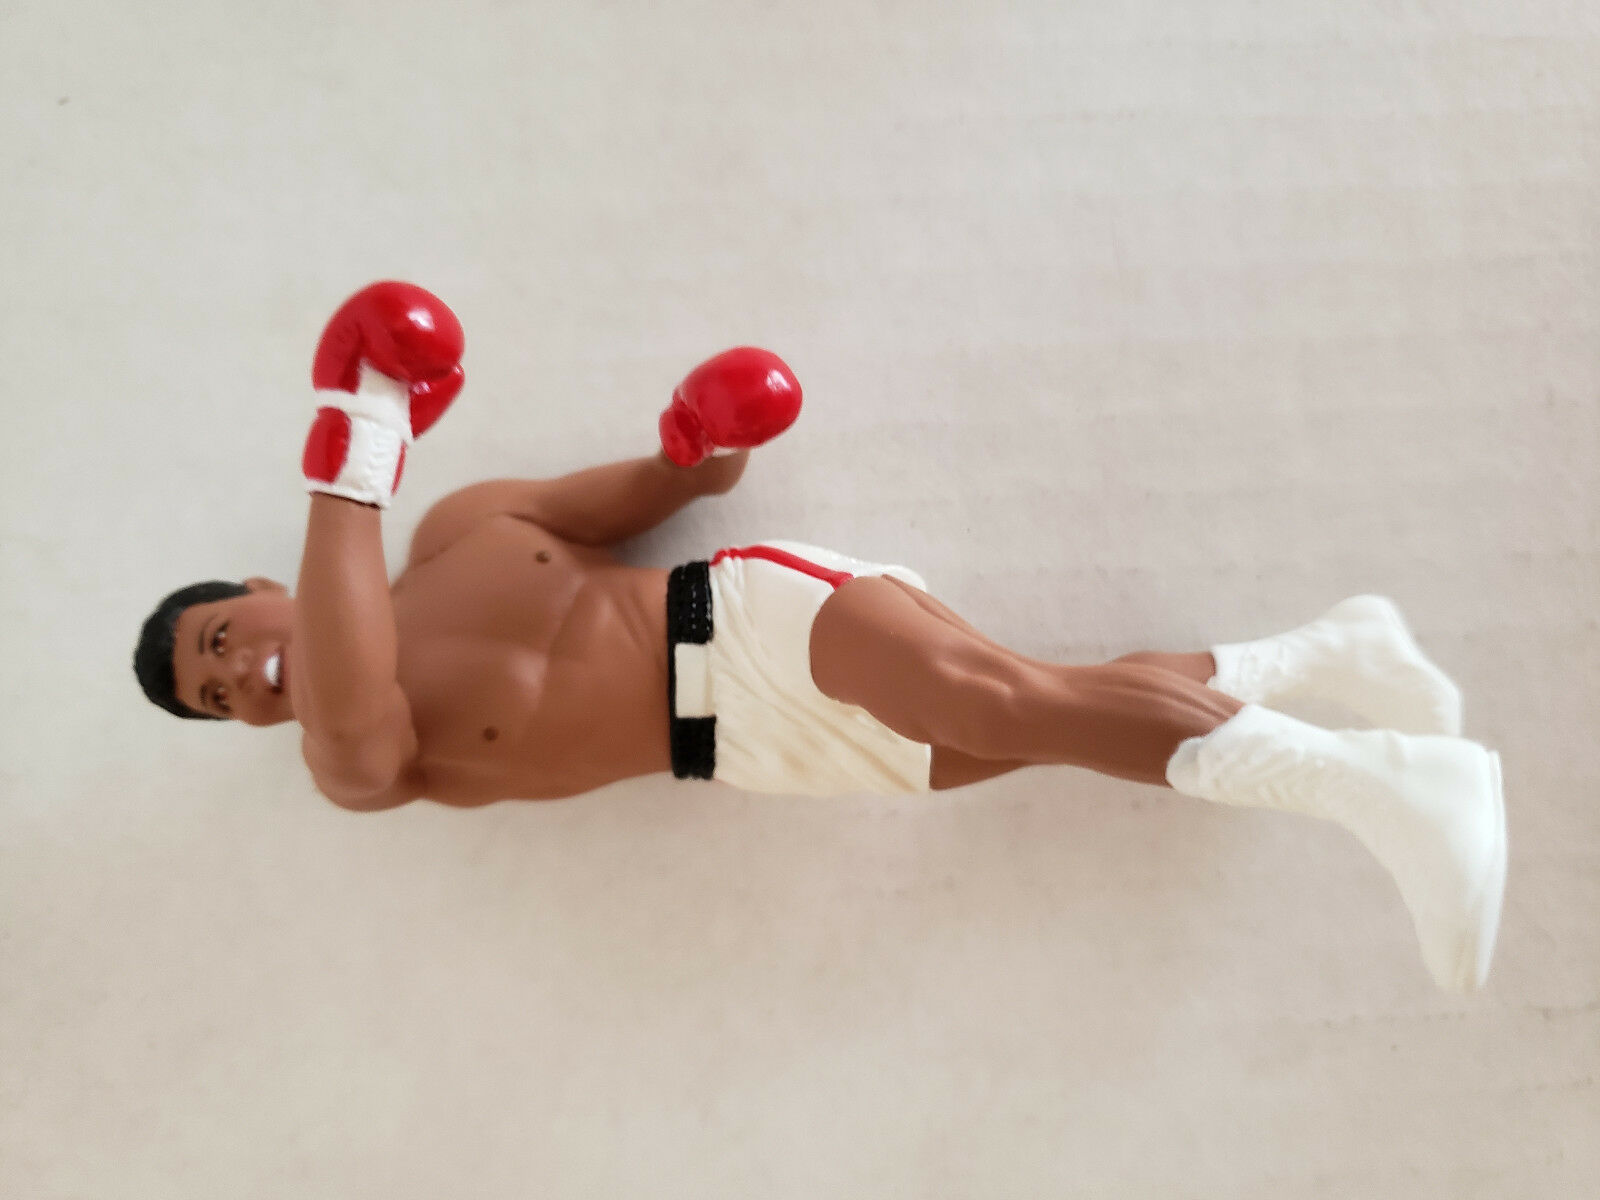 1999 Muhammad Ali Boxing Great Hallmark Keepsake Christmas Ornament Orig. Box image 3